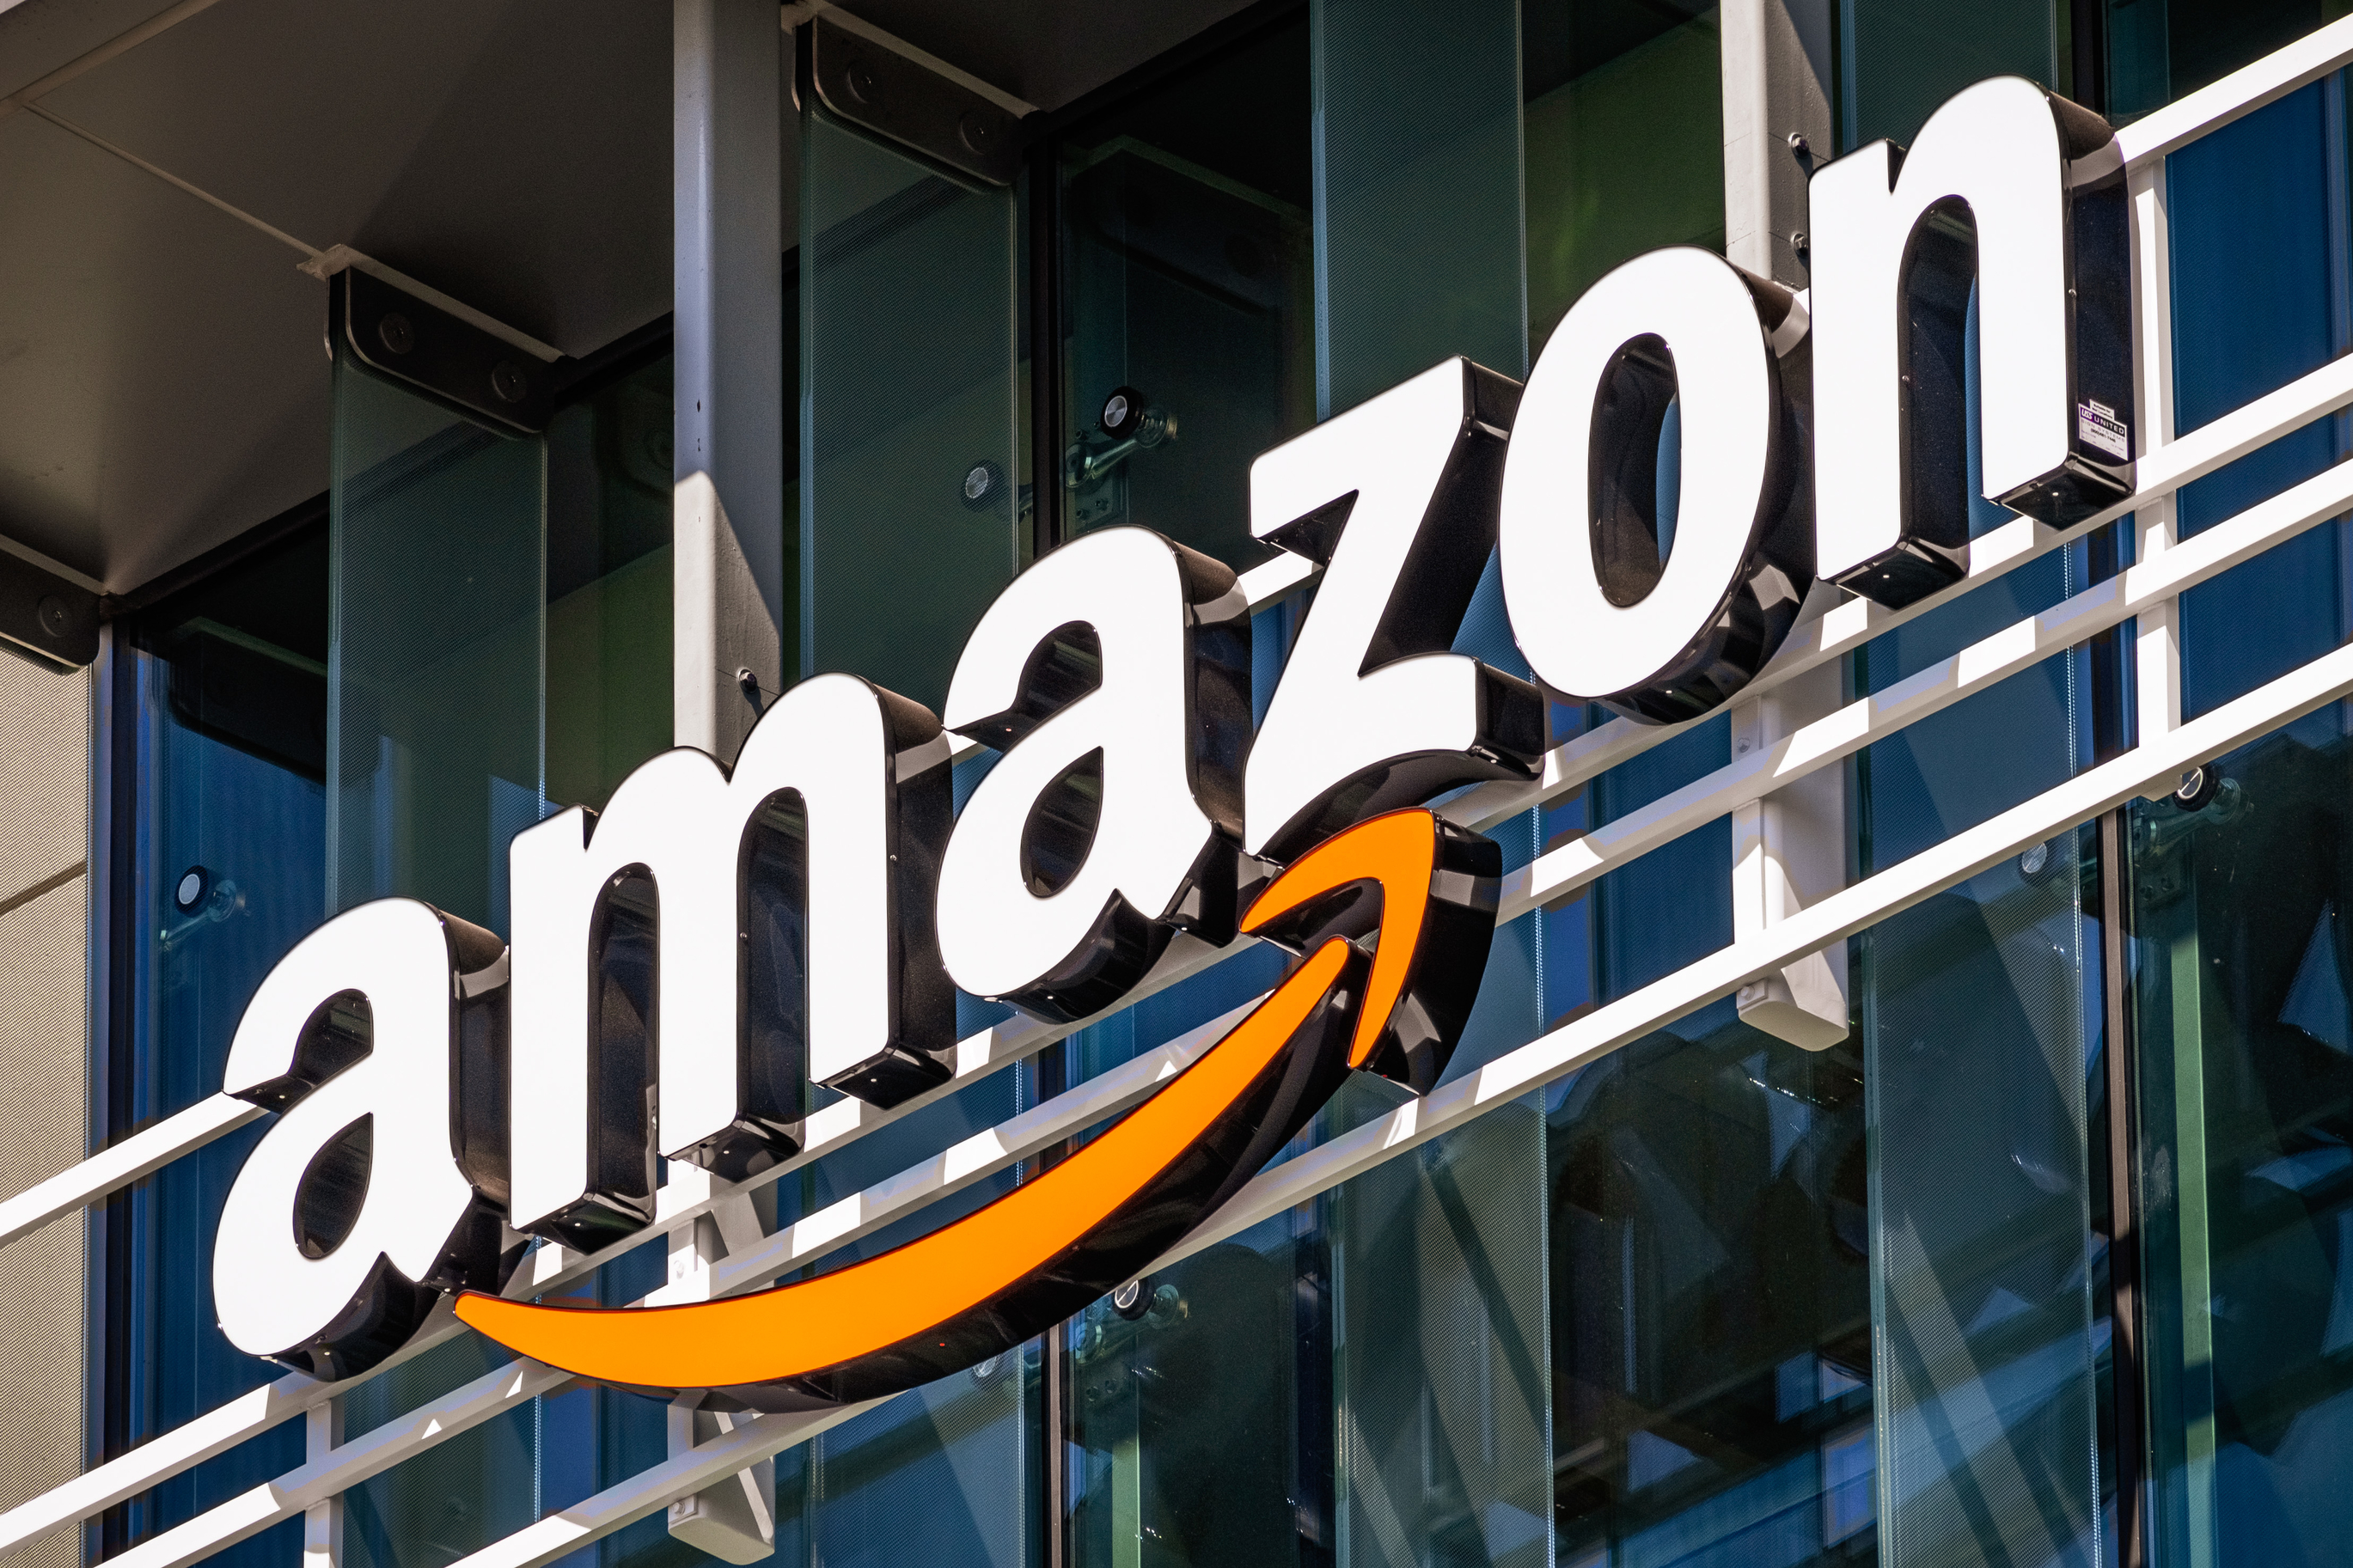 Stop complaining about Amazon, Walmart; compete against them instead (Your letters)